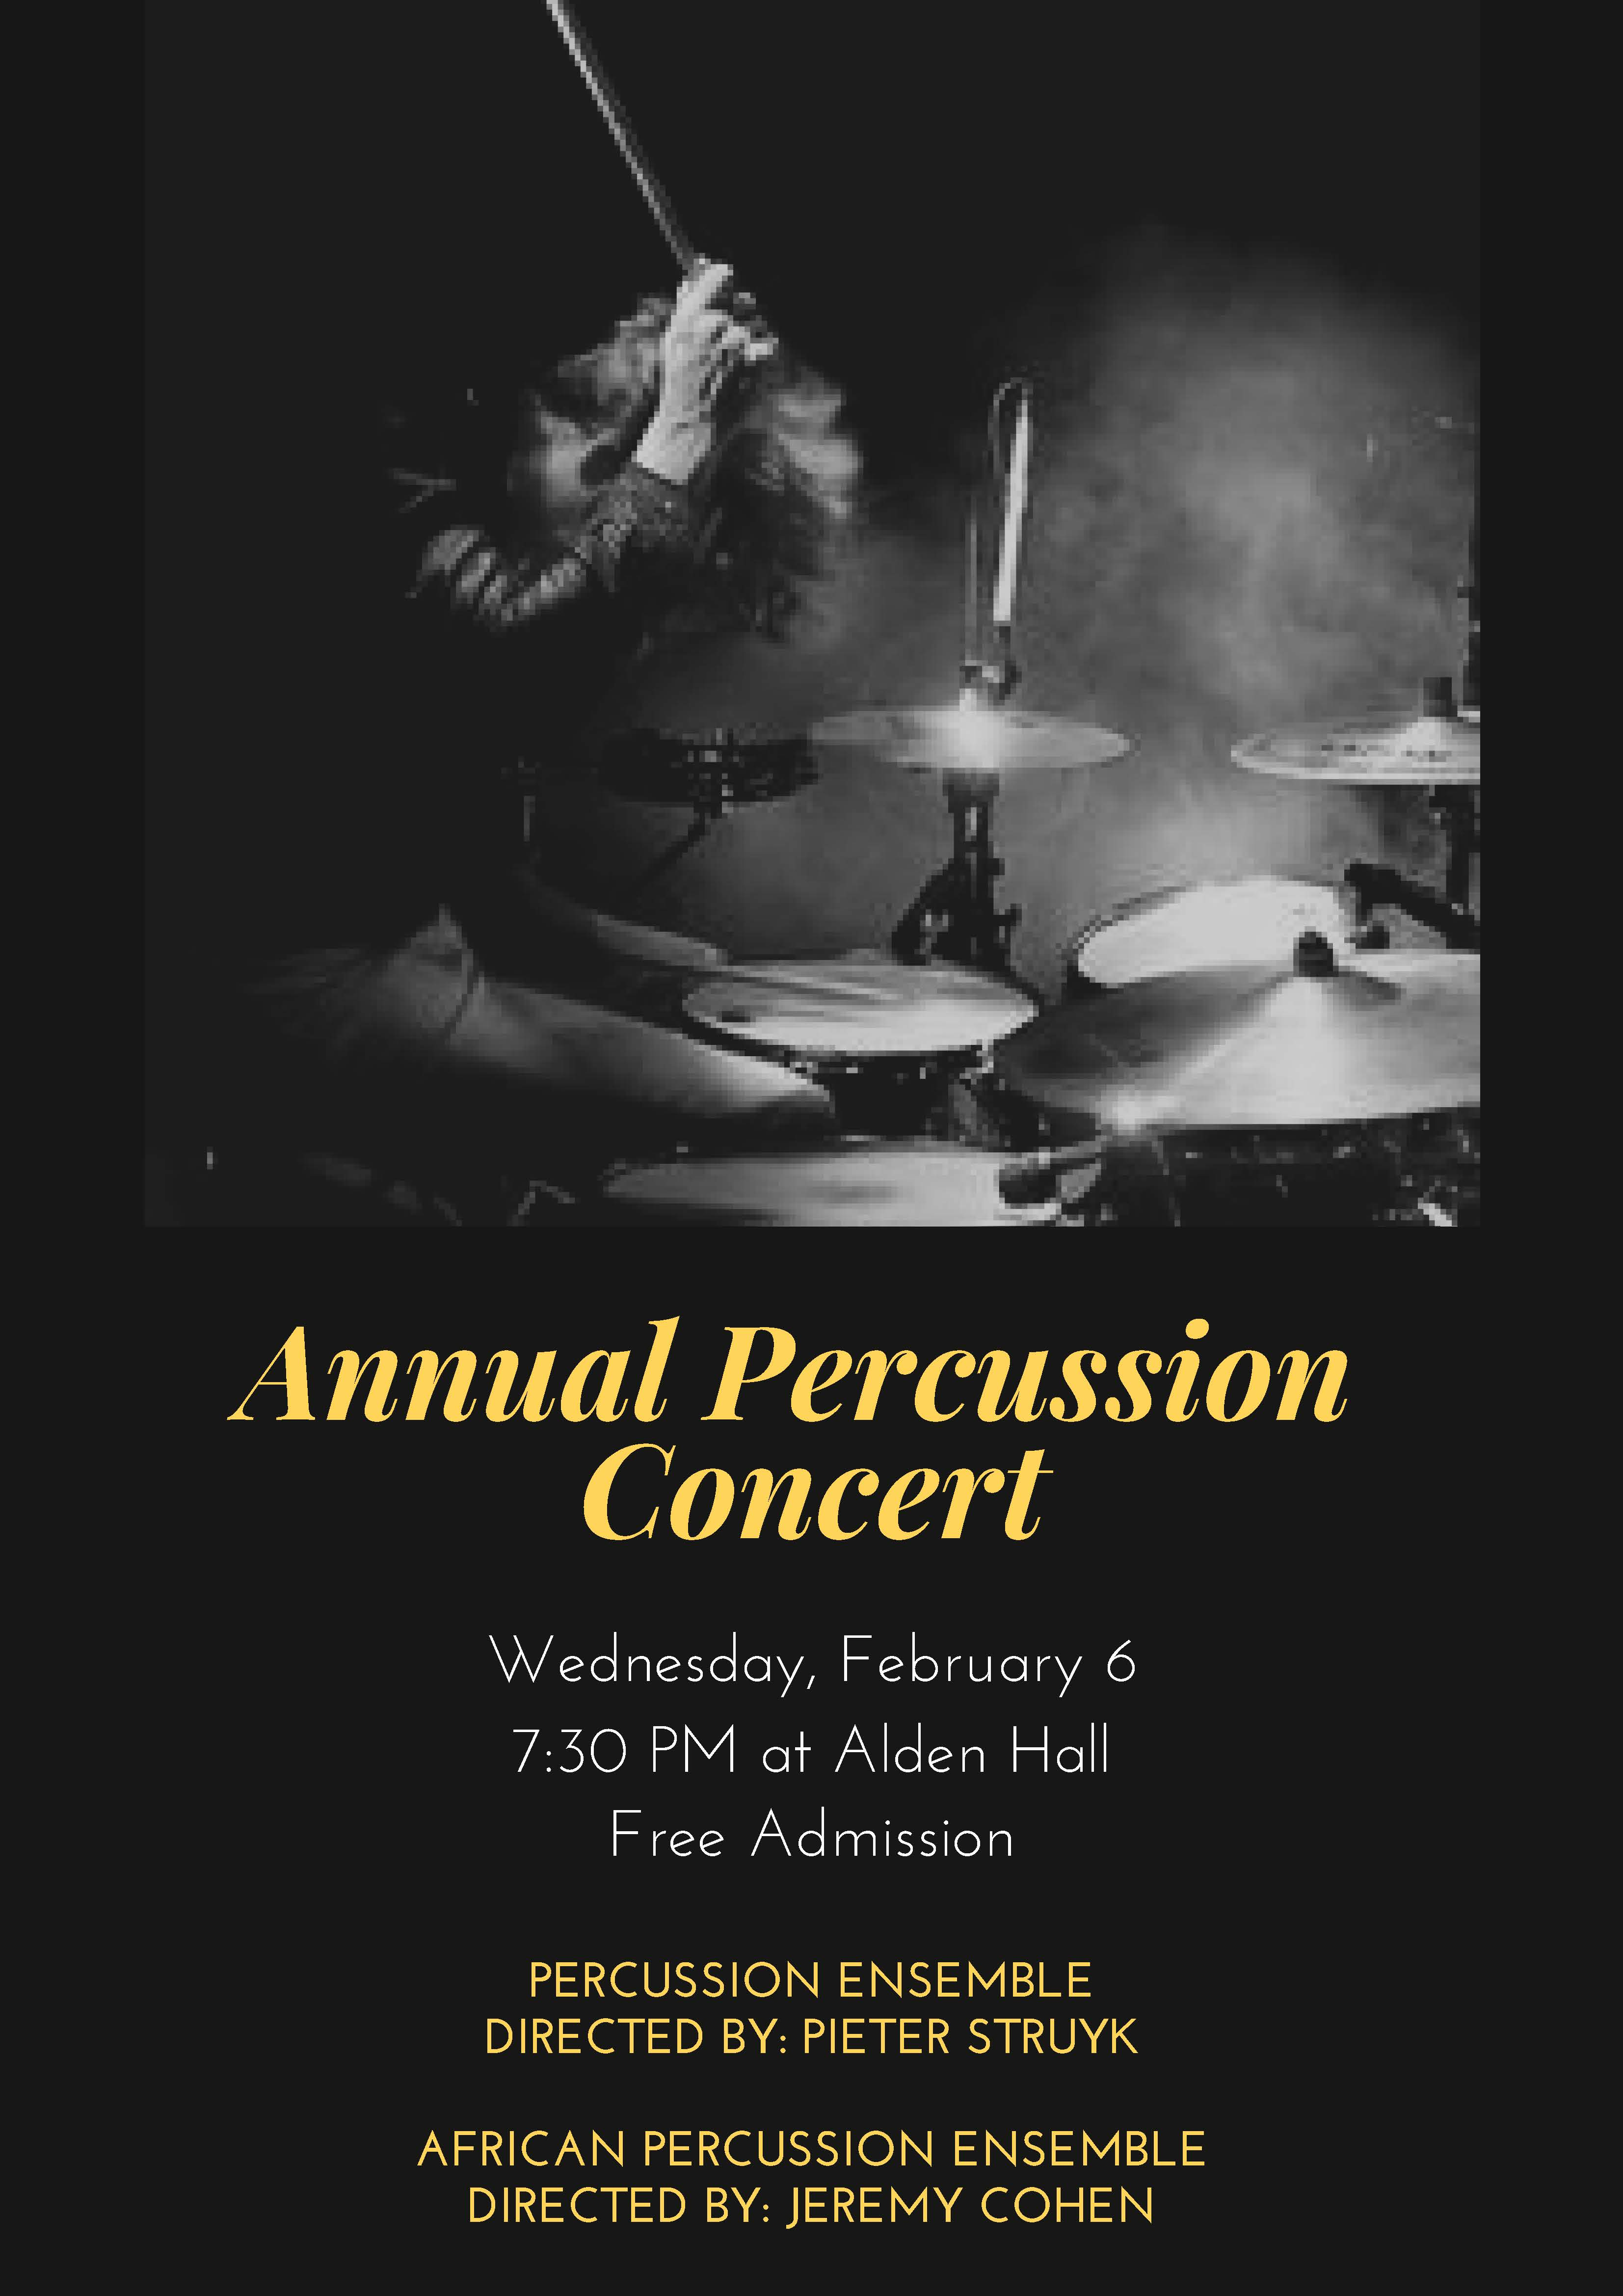 Percussion Ensemble and African Percussion Ensemble